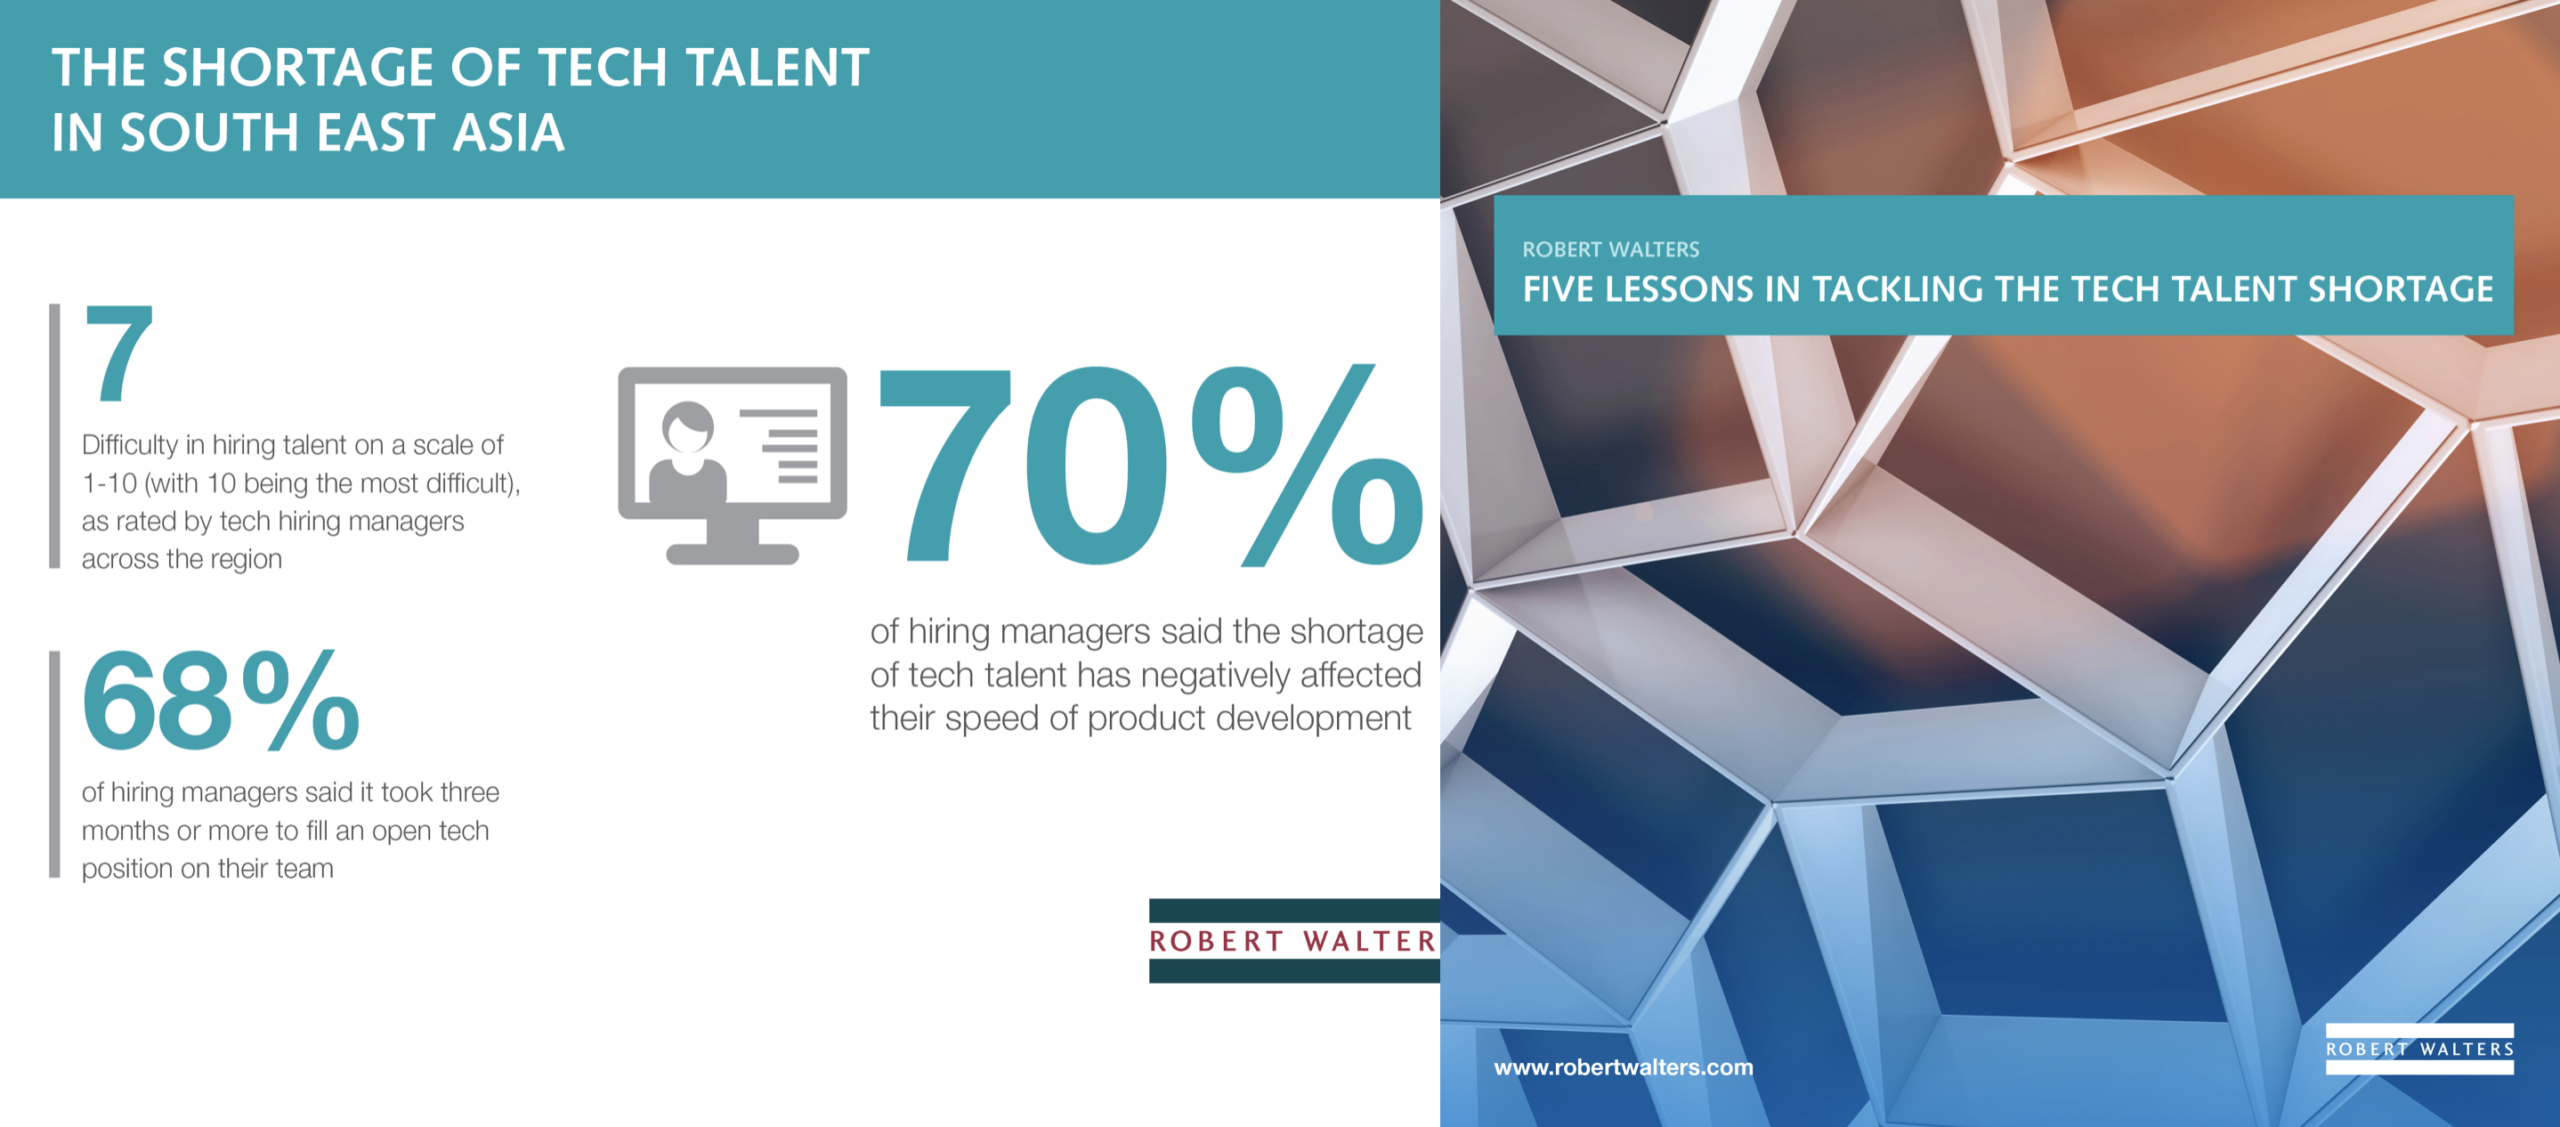 Ease Tech Talent Shortage with Innovative Recruitment and Retention Approaches – Robert Walters